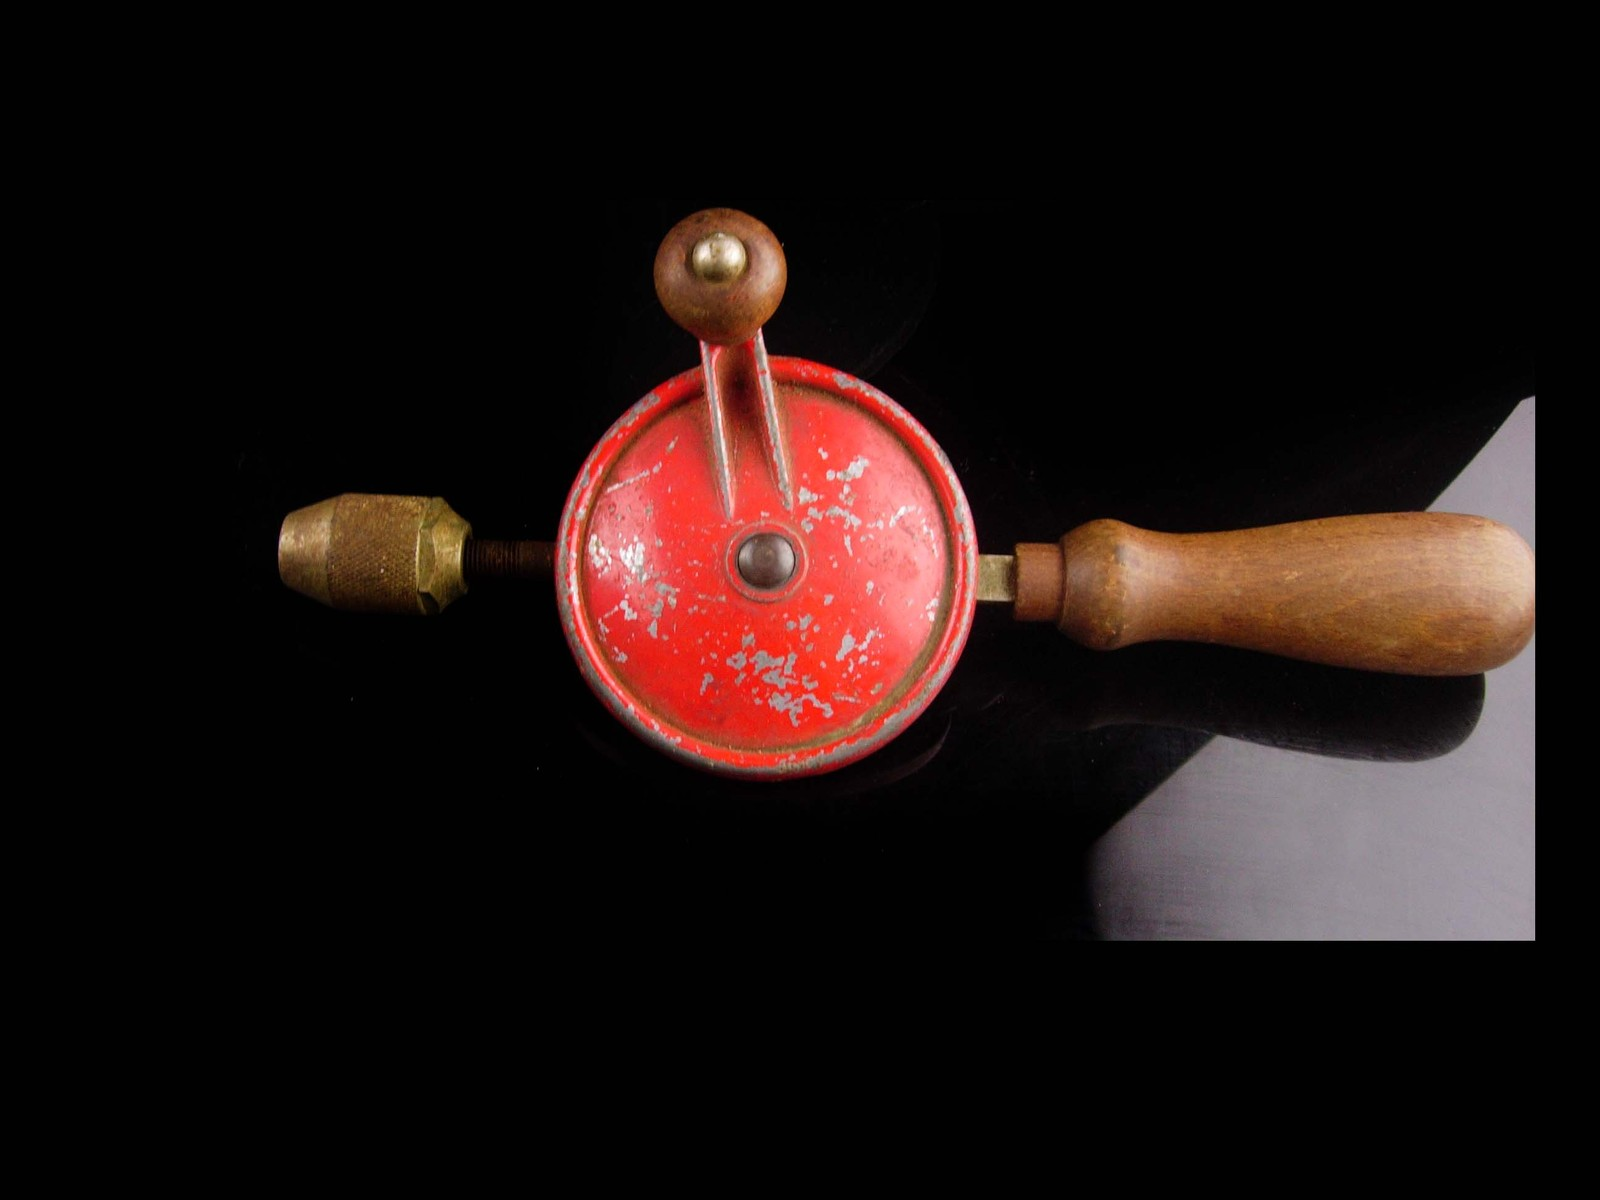 Vintage drill /  gift for him / Gear driven- hand tool - Red wood - woodworker g image 2